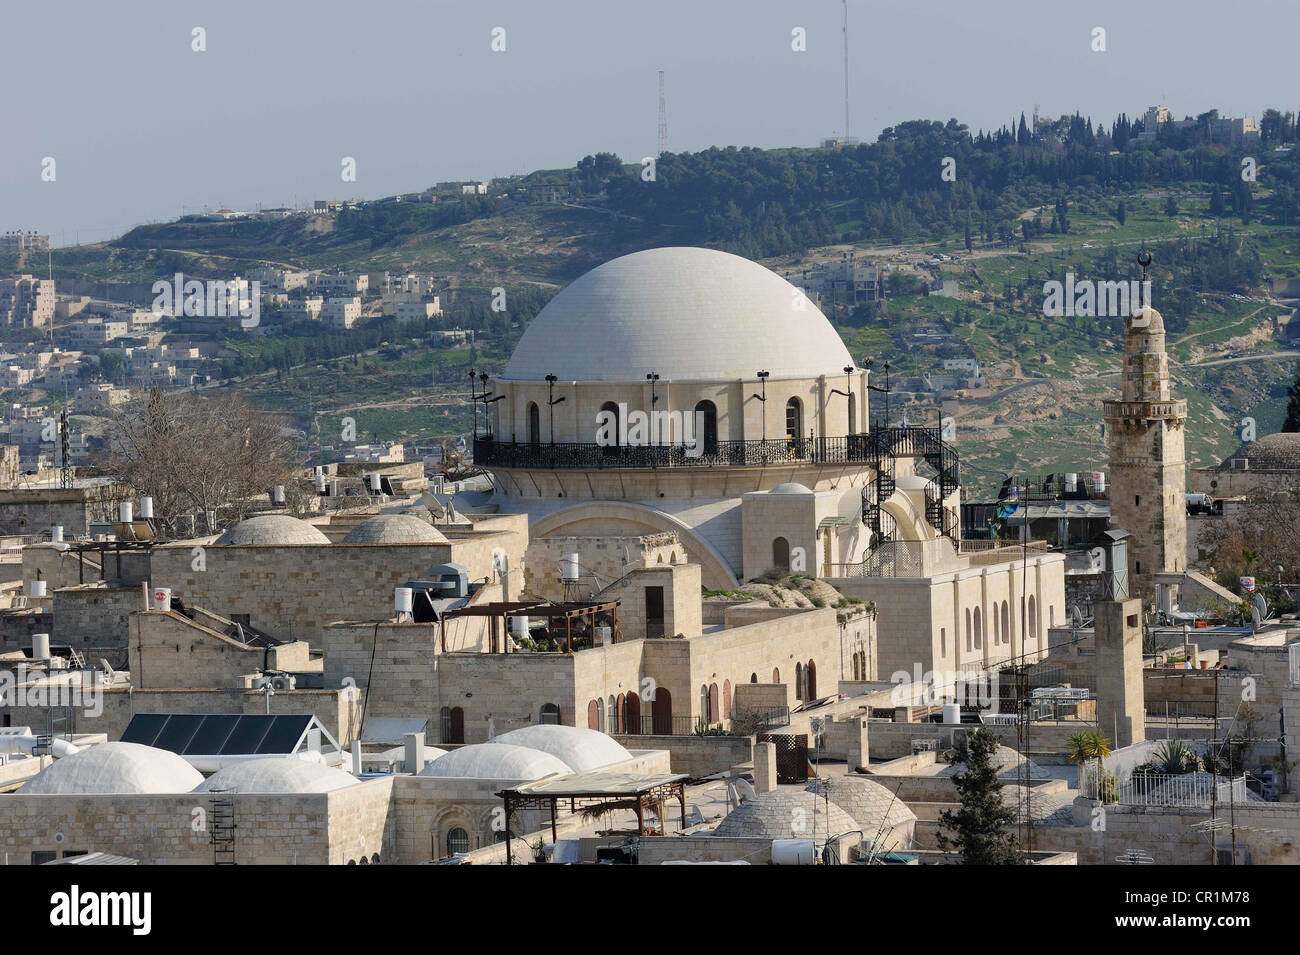 Oblique aerial photograph of the Sephardic Synagogues, Jewish Quarter, Old City of Jerusalem, Israel, Middle East - Stock Image